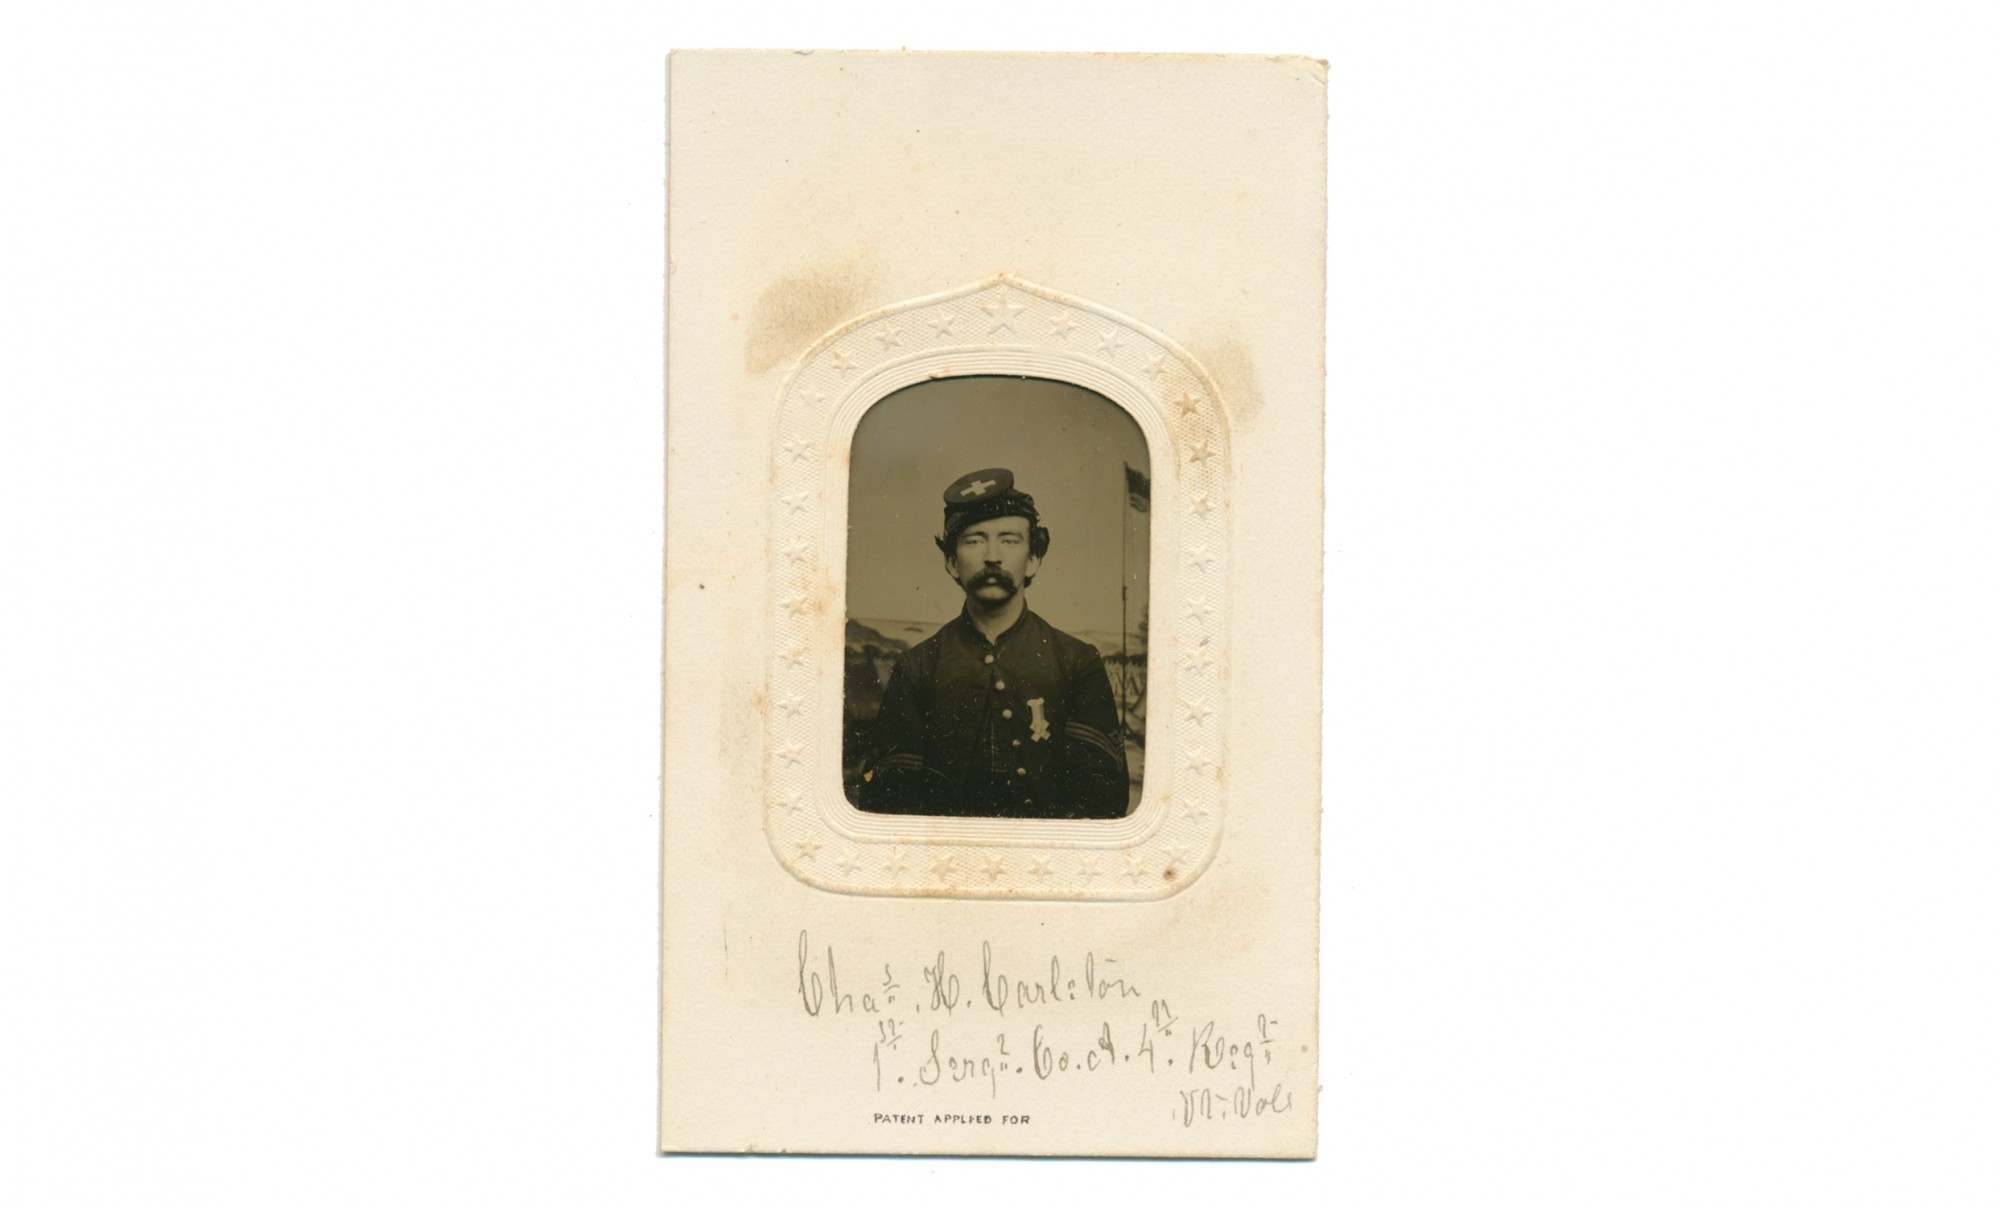 TINTYPE BUST VIEW OF ID'D 4TH VERMONT SOLDIER WOUNDED AT PETERSBURG